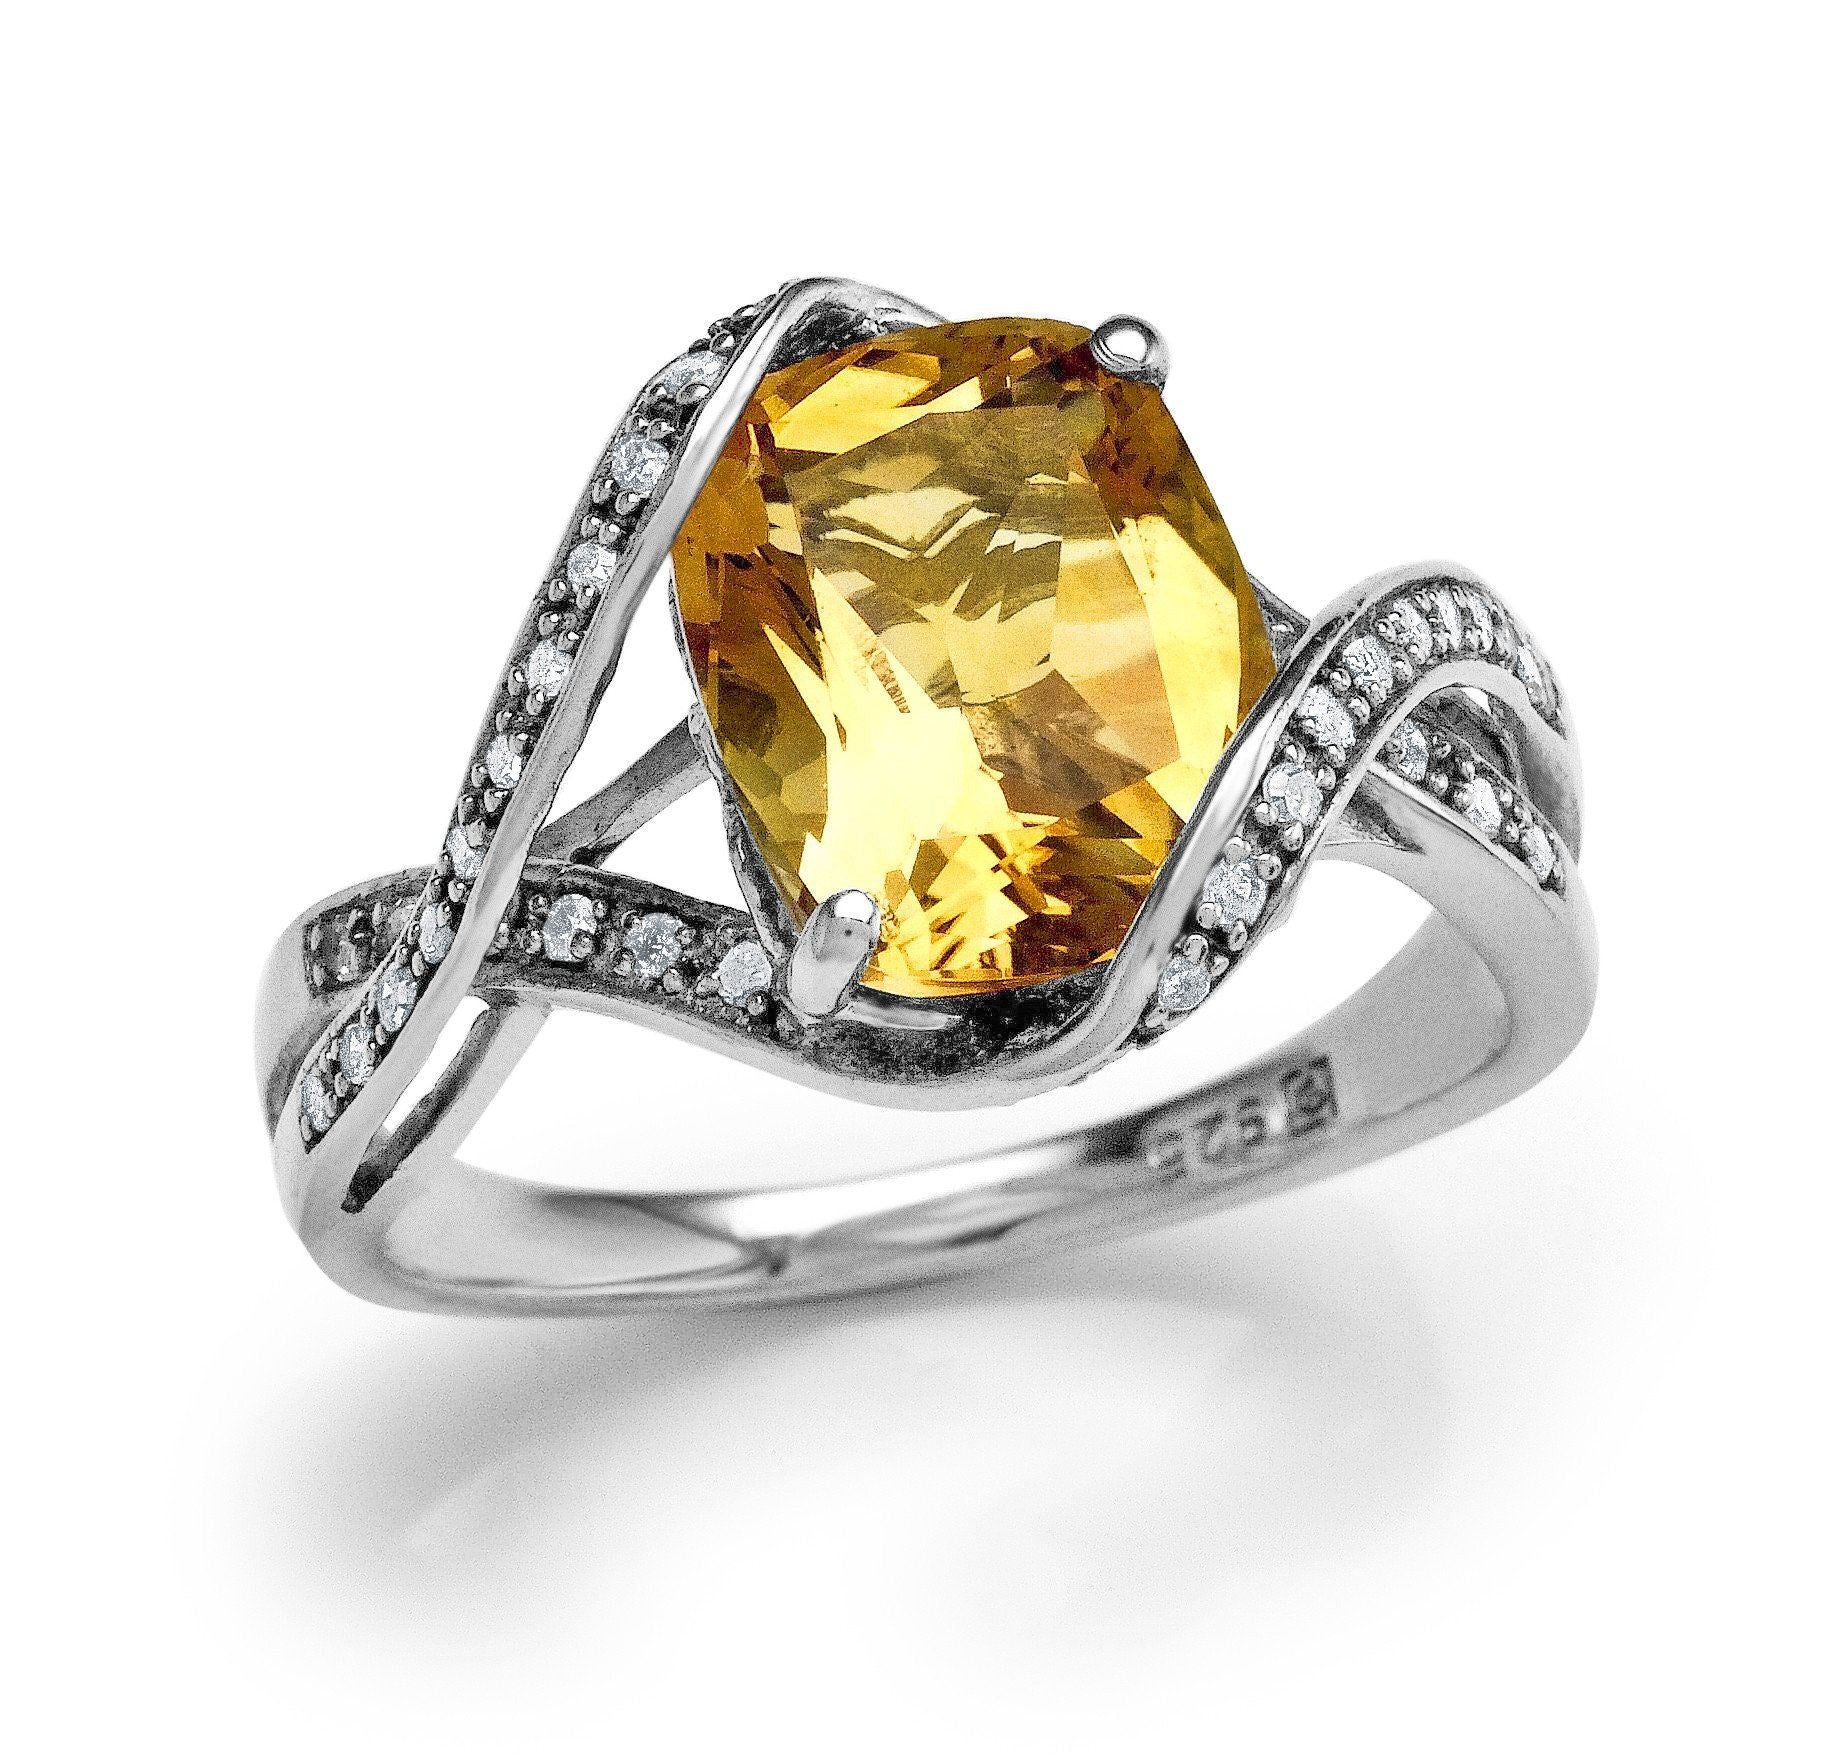 3.05 Carat Genuine Citrine & Diamond Ring in Sterling Silver